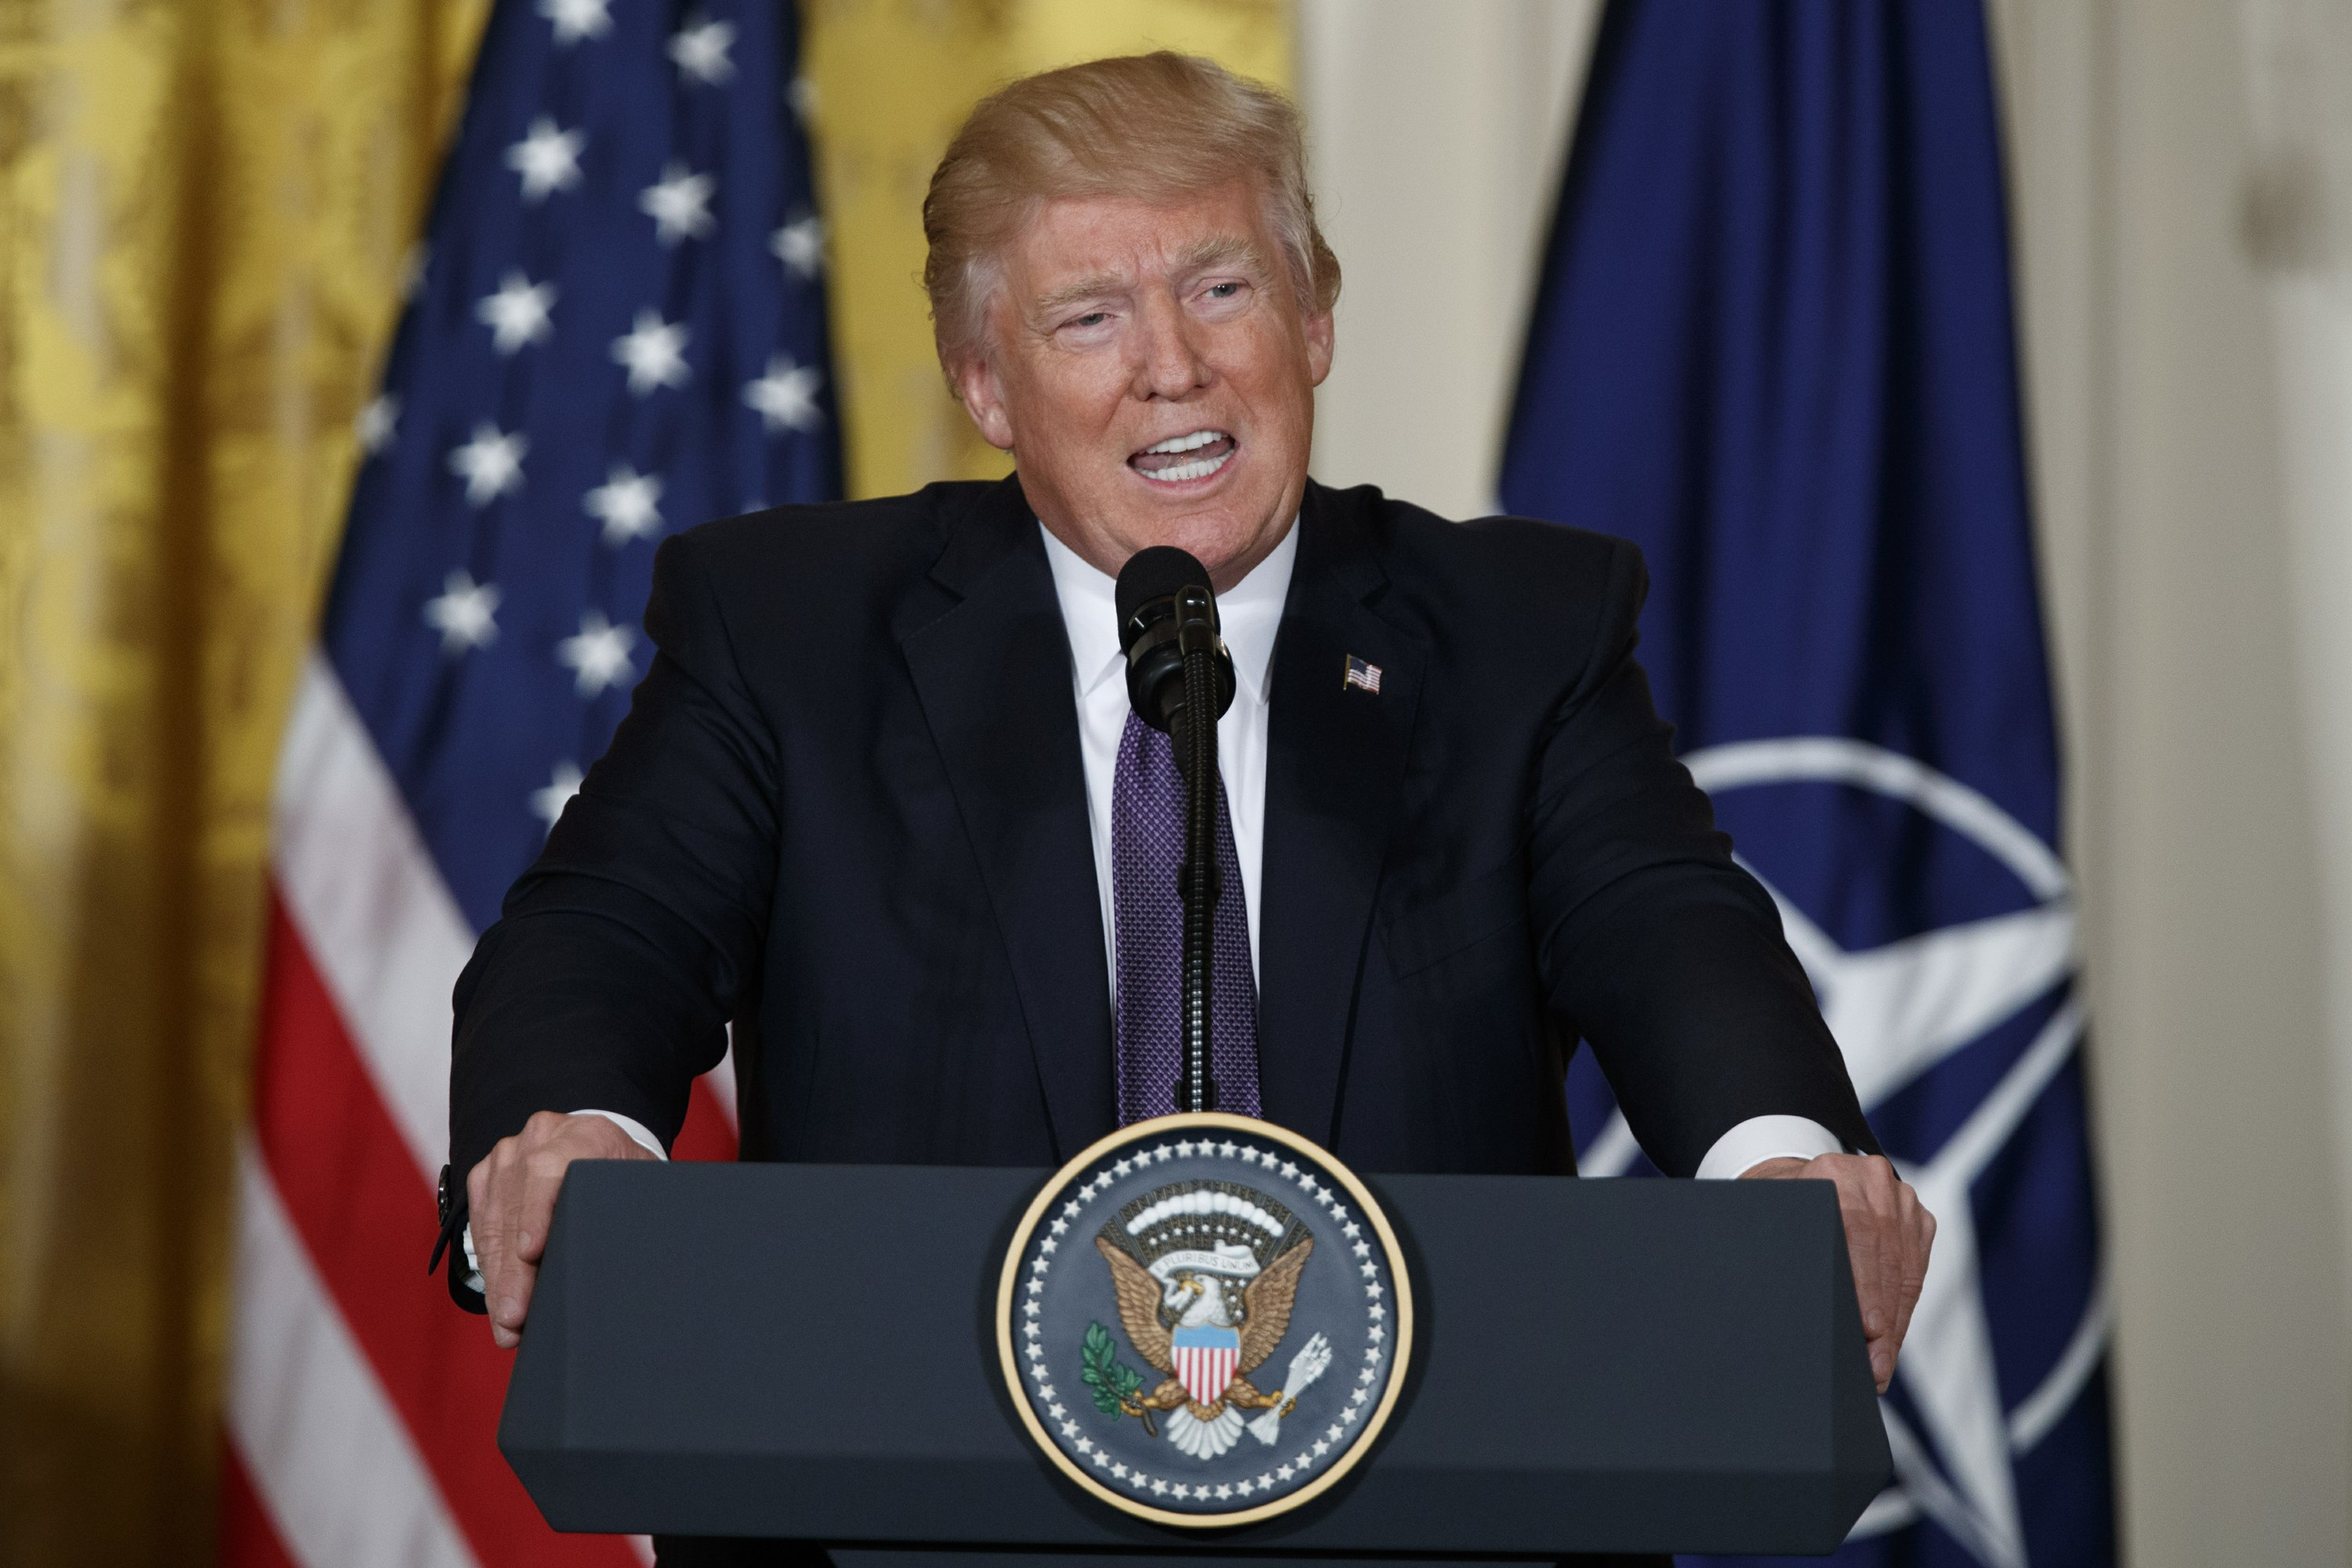 Trump reverses himself on NATO, China, Russia and more